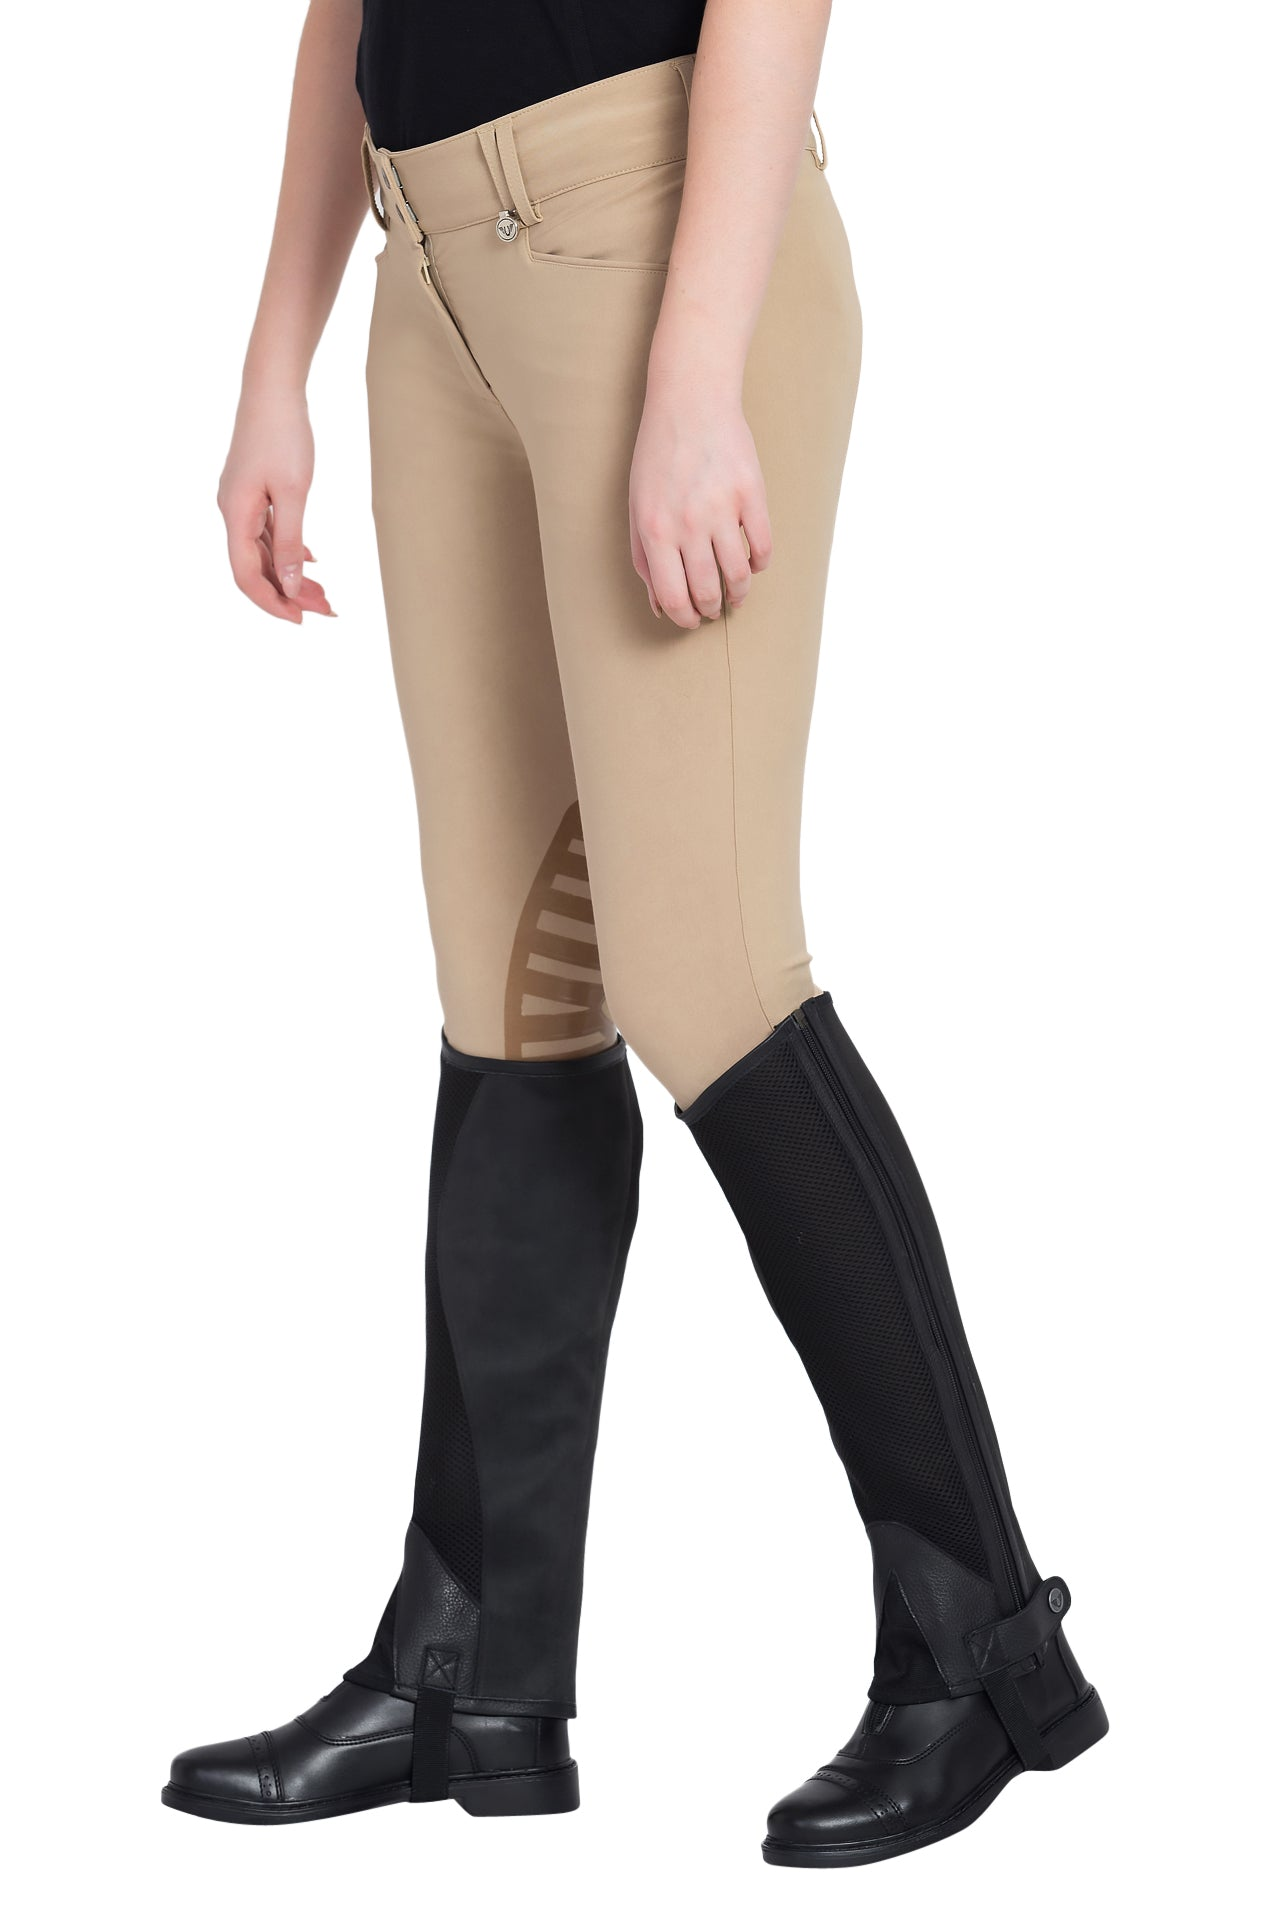 Air Mesh Washable Half Chaps - TuffRider - Breeches.com